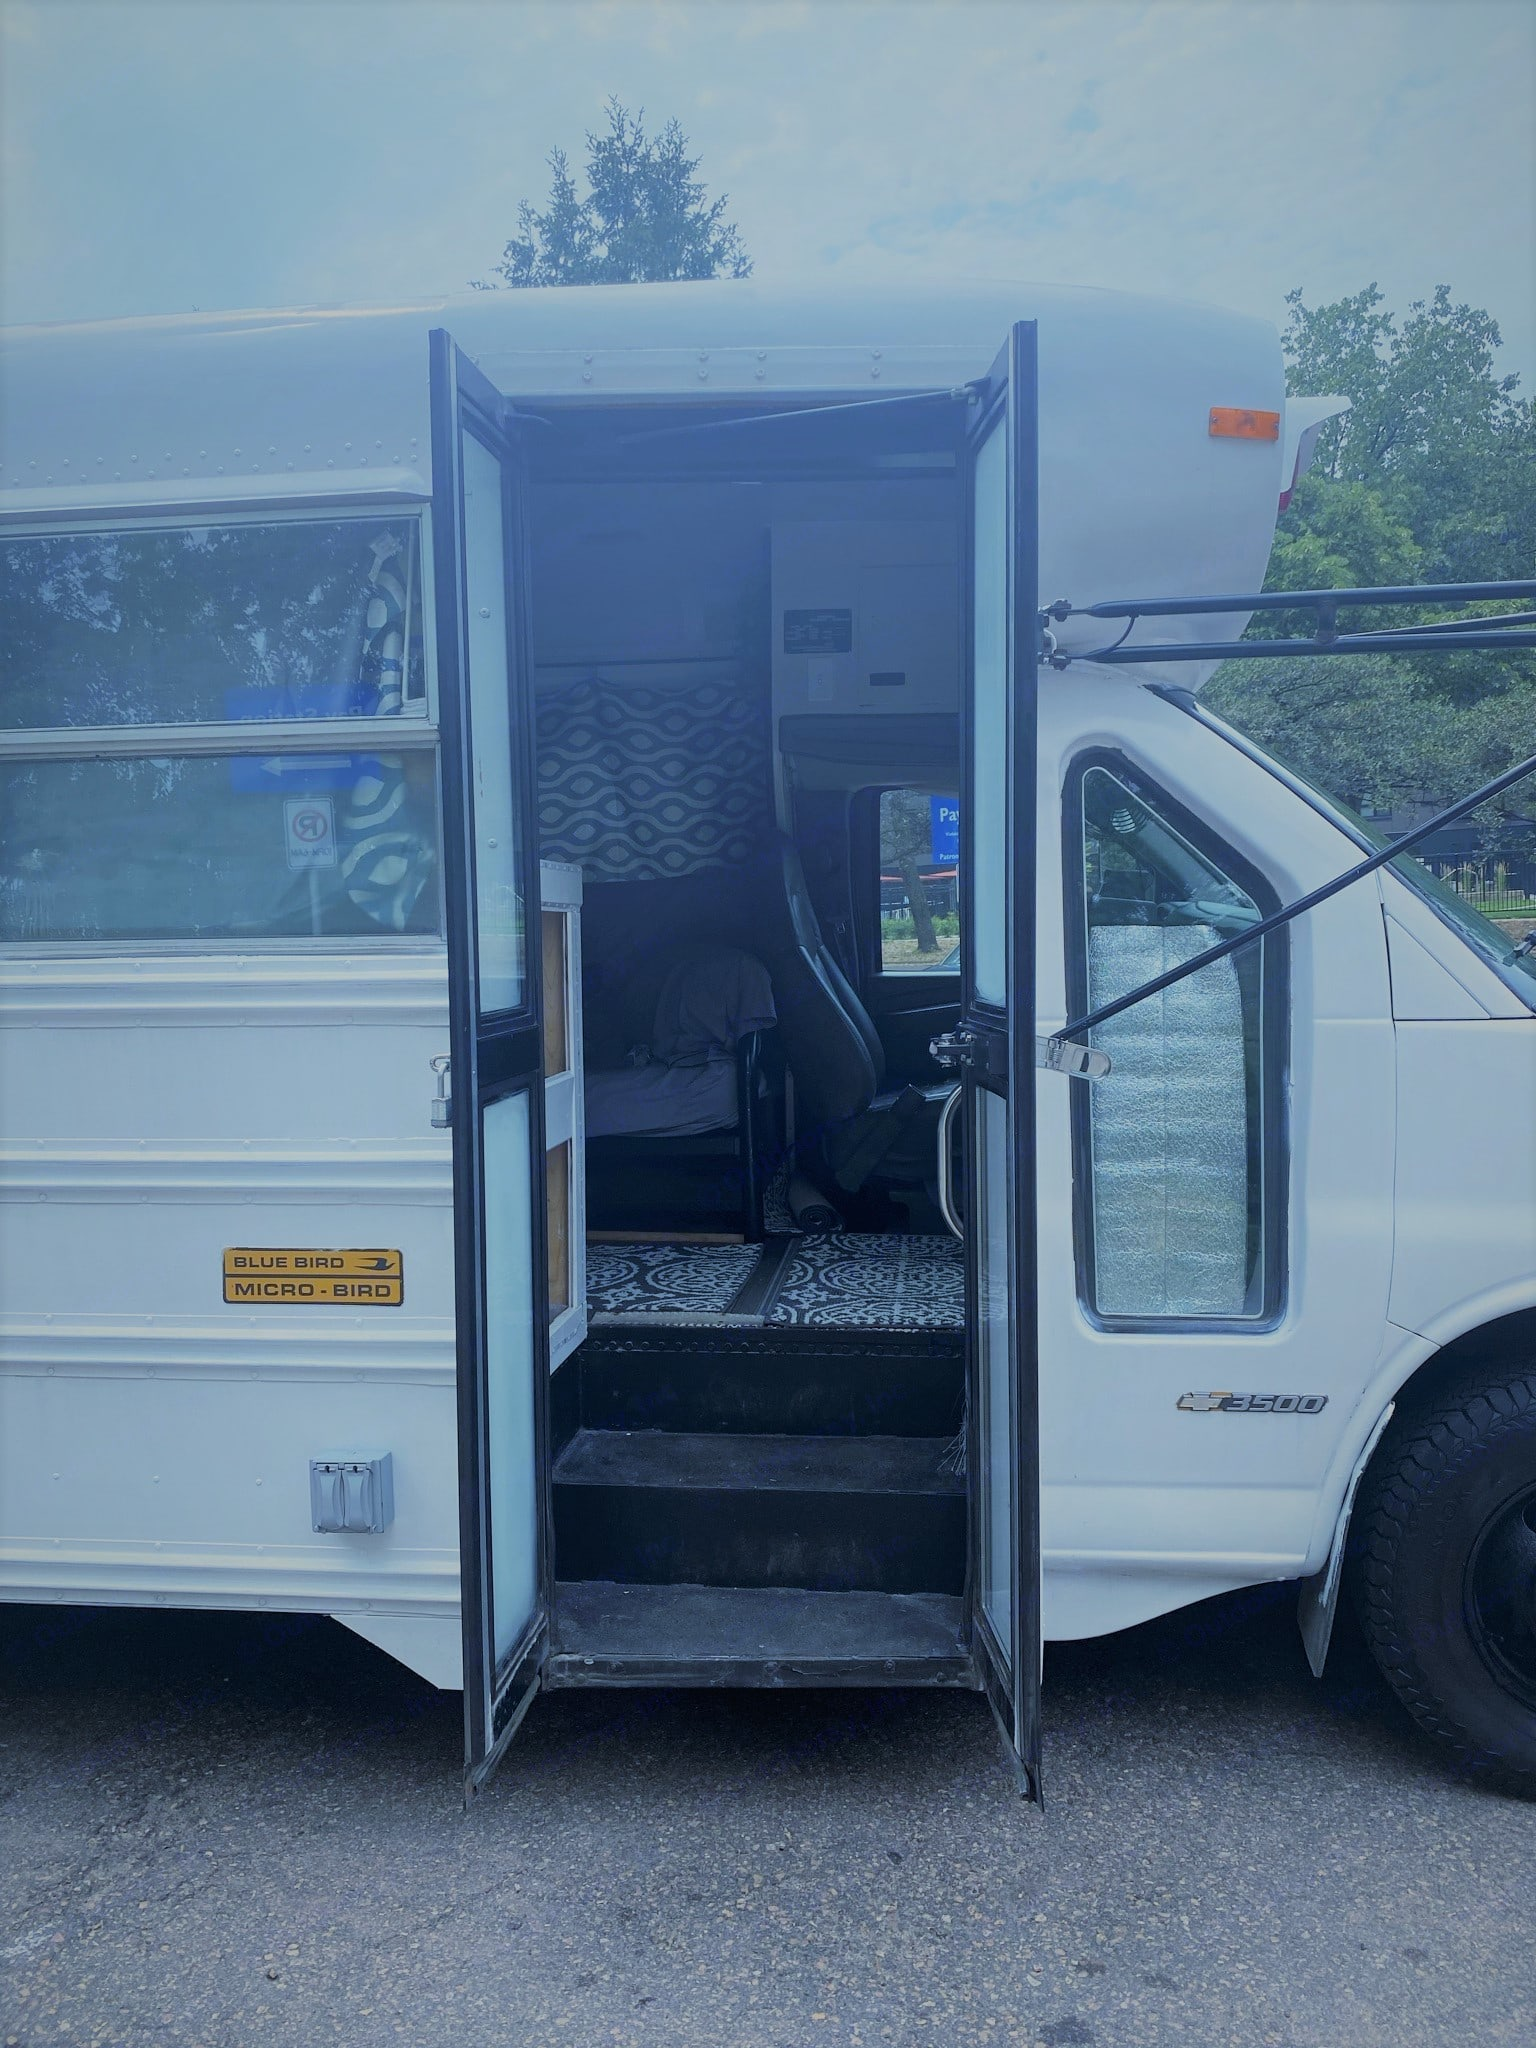 Keeping the original school bus doors gives this camper a look that brings you back to your childhood. . Blue Bird Bus 2006